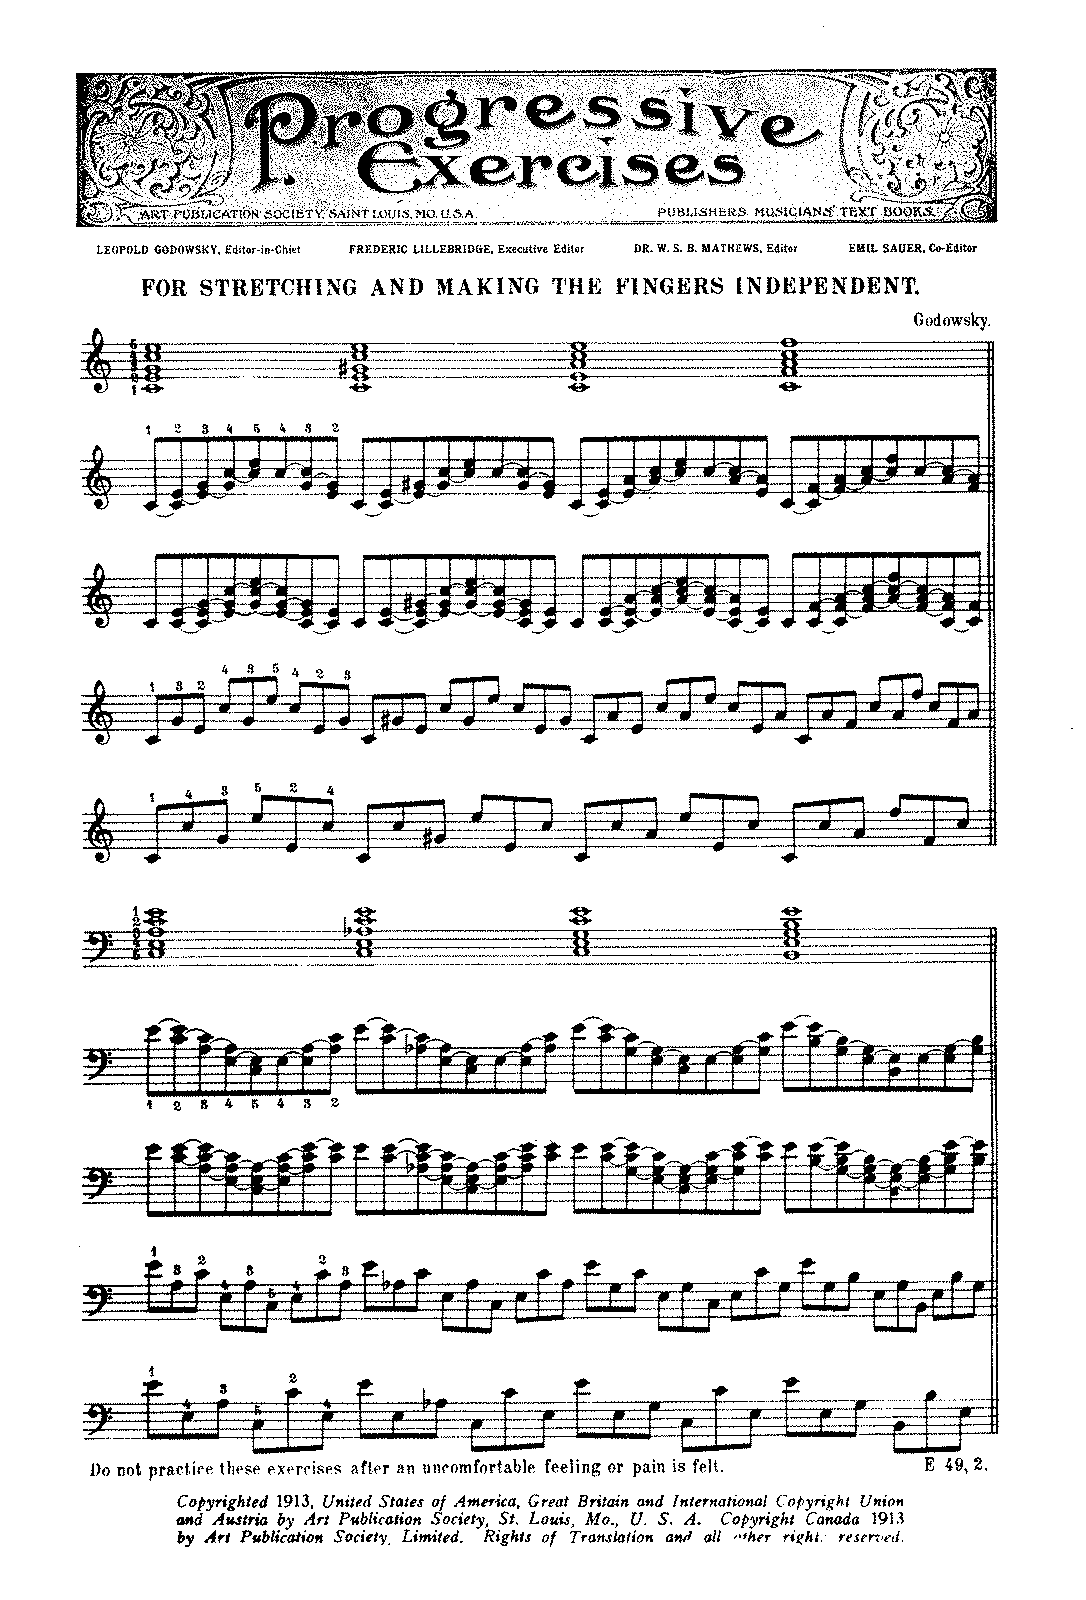 Godowsky - Piano Exercises.pdf